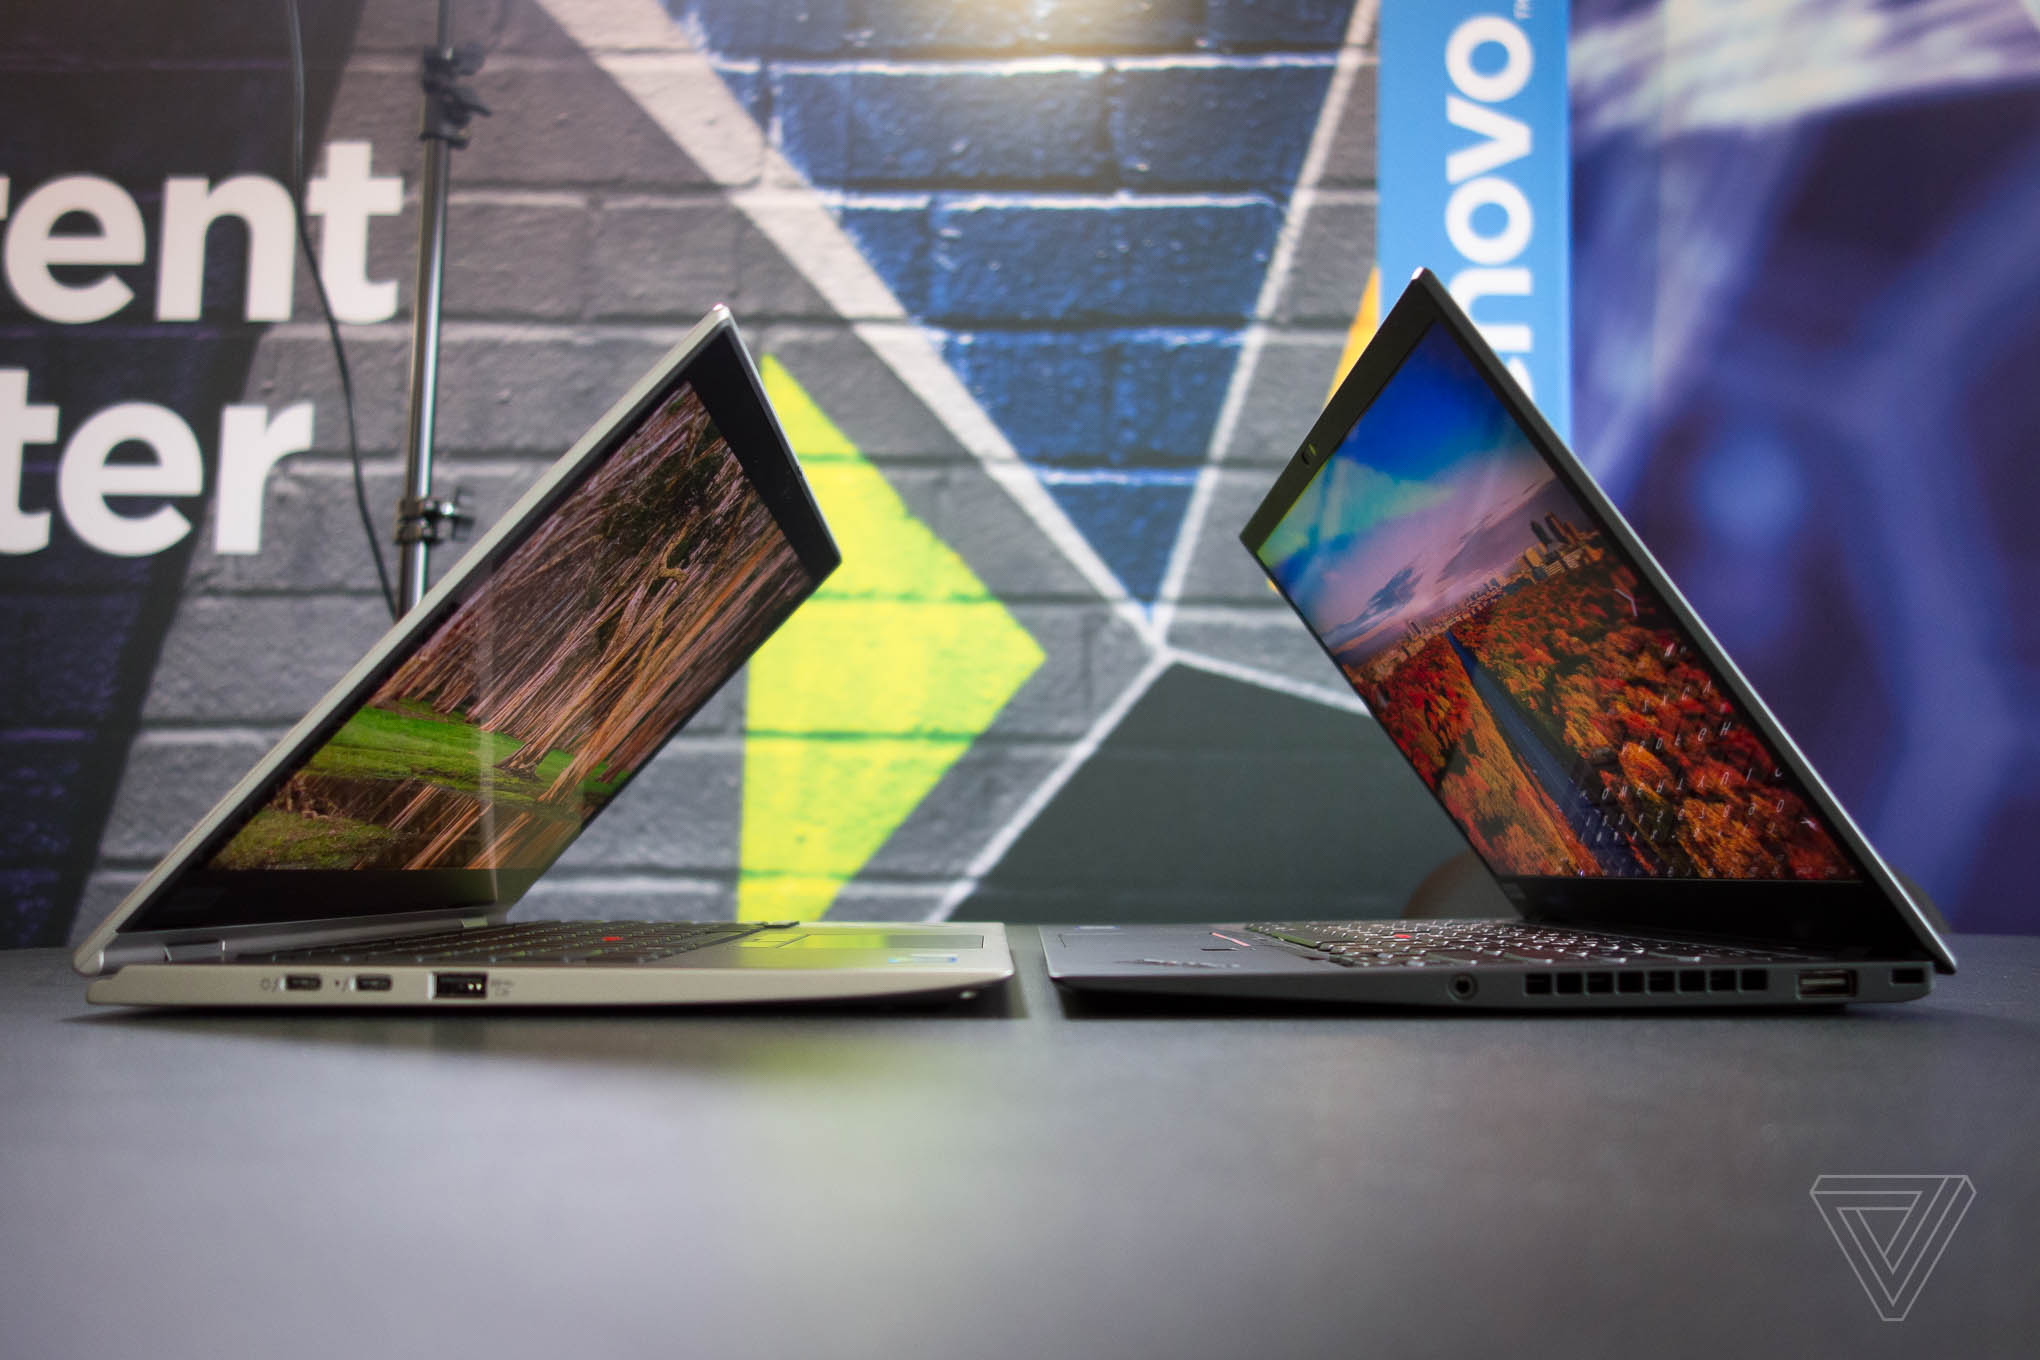 Lenovo's refreshing their best no-frills laptops with HDR displays